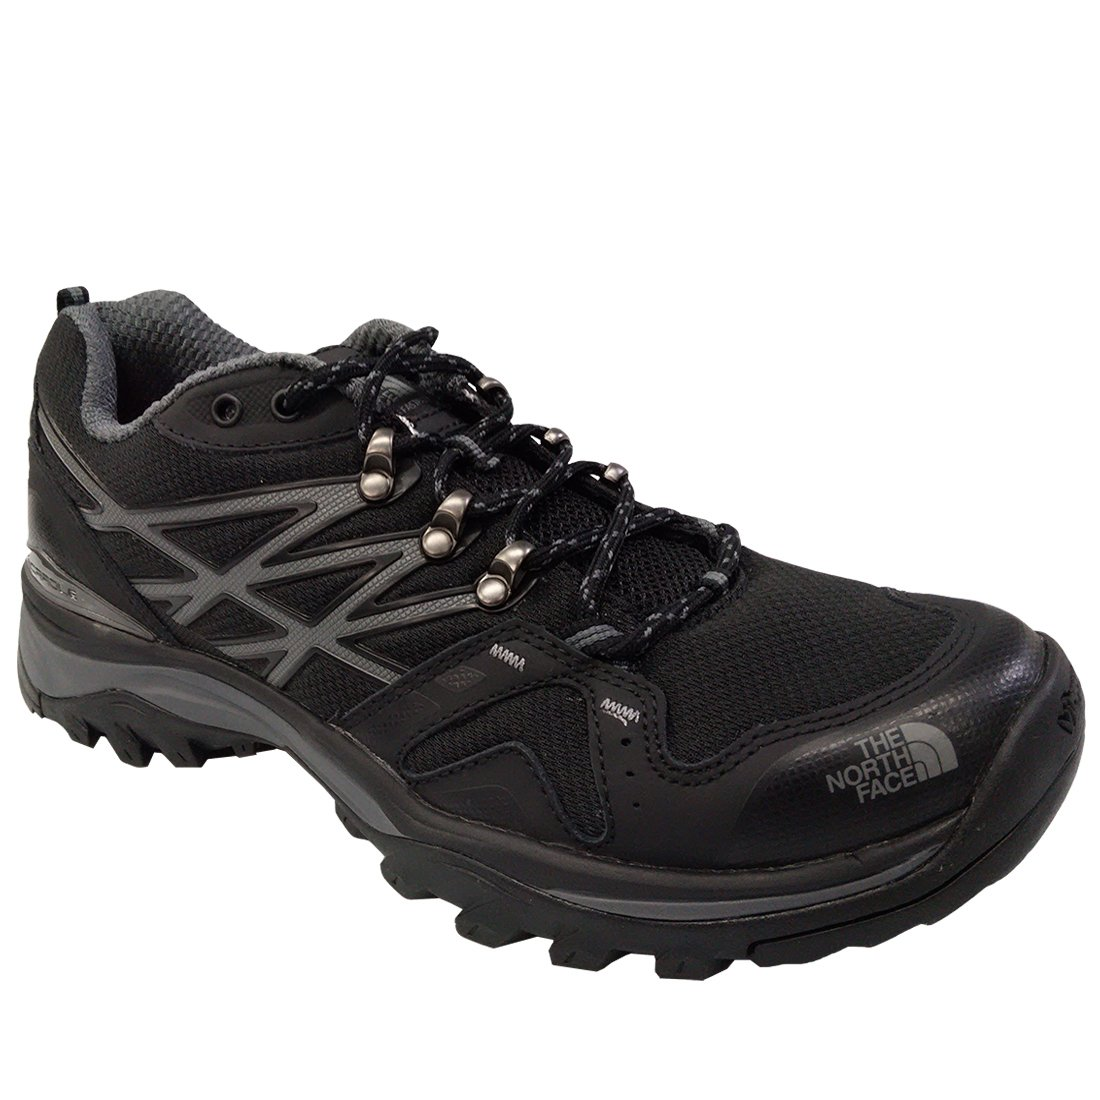 The North Face Hedgehog Fastpack Shoe Men's TNF Black/Griffin Grey 9 by The North Face